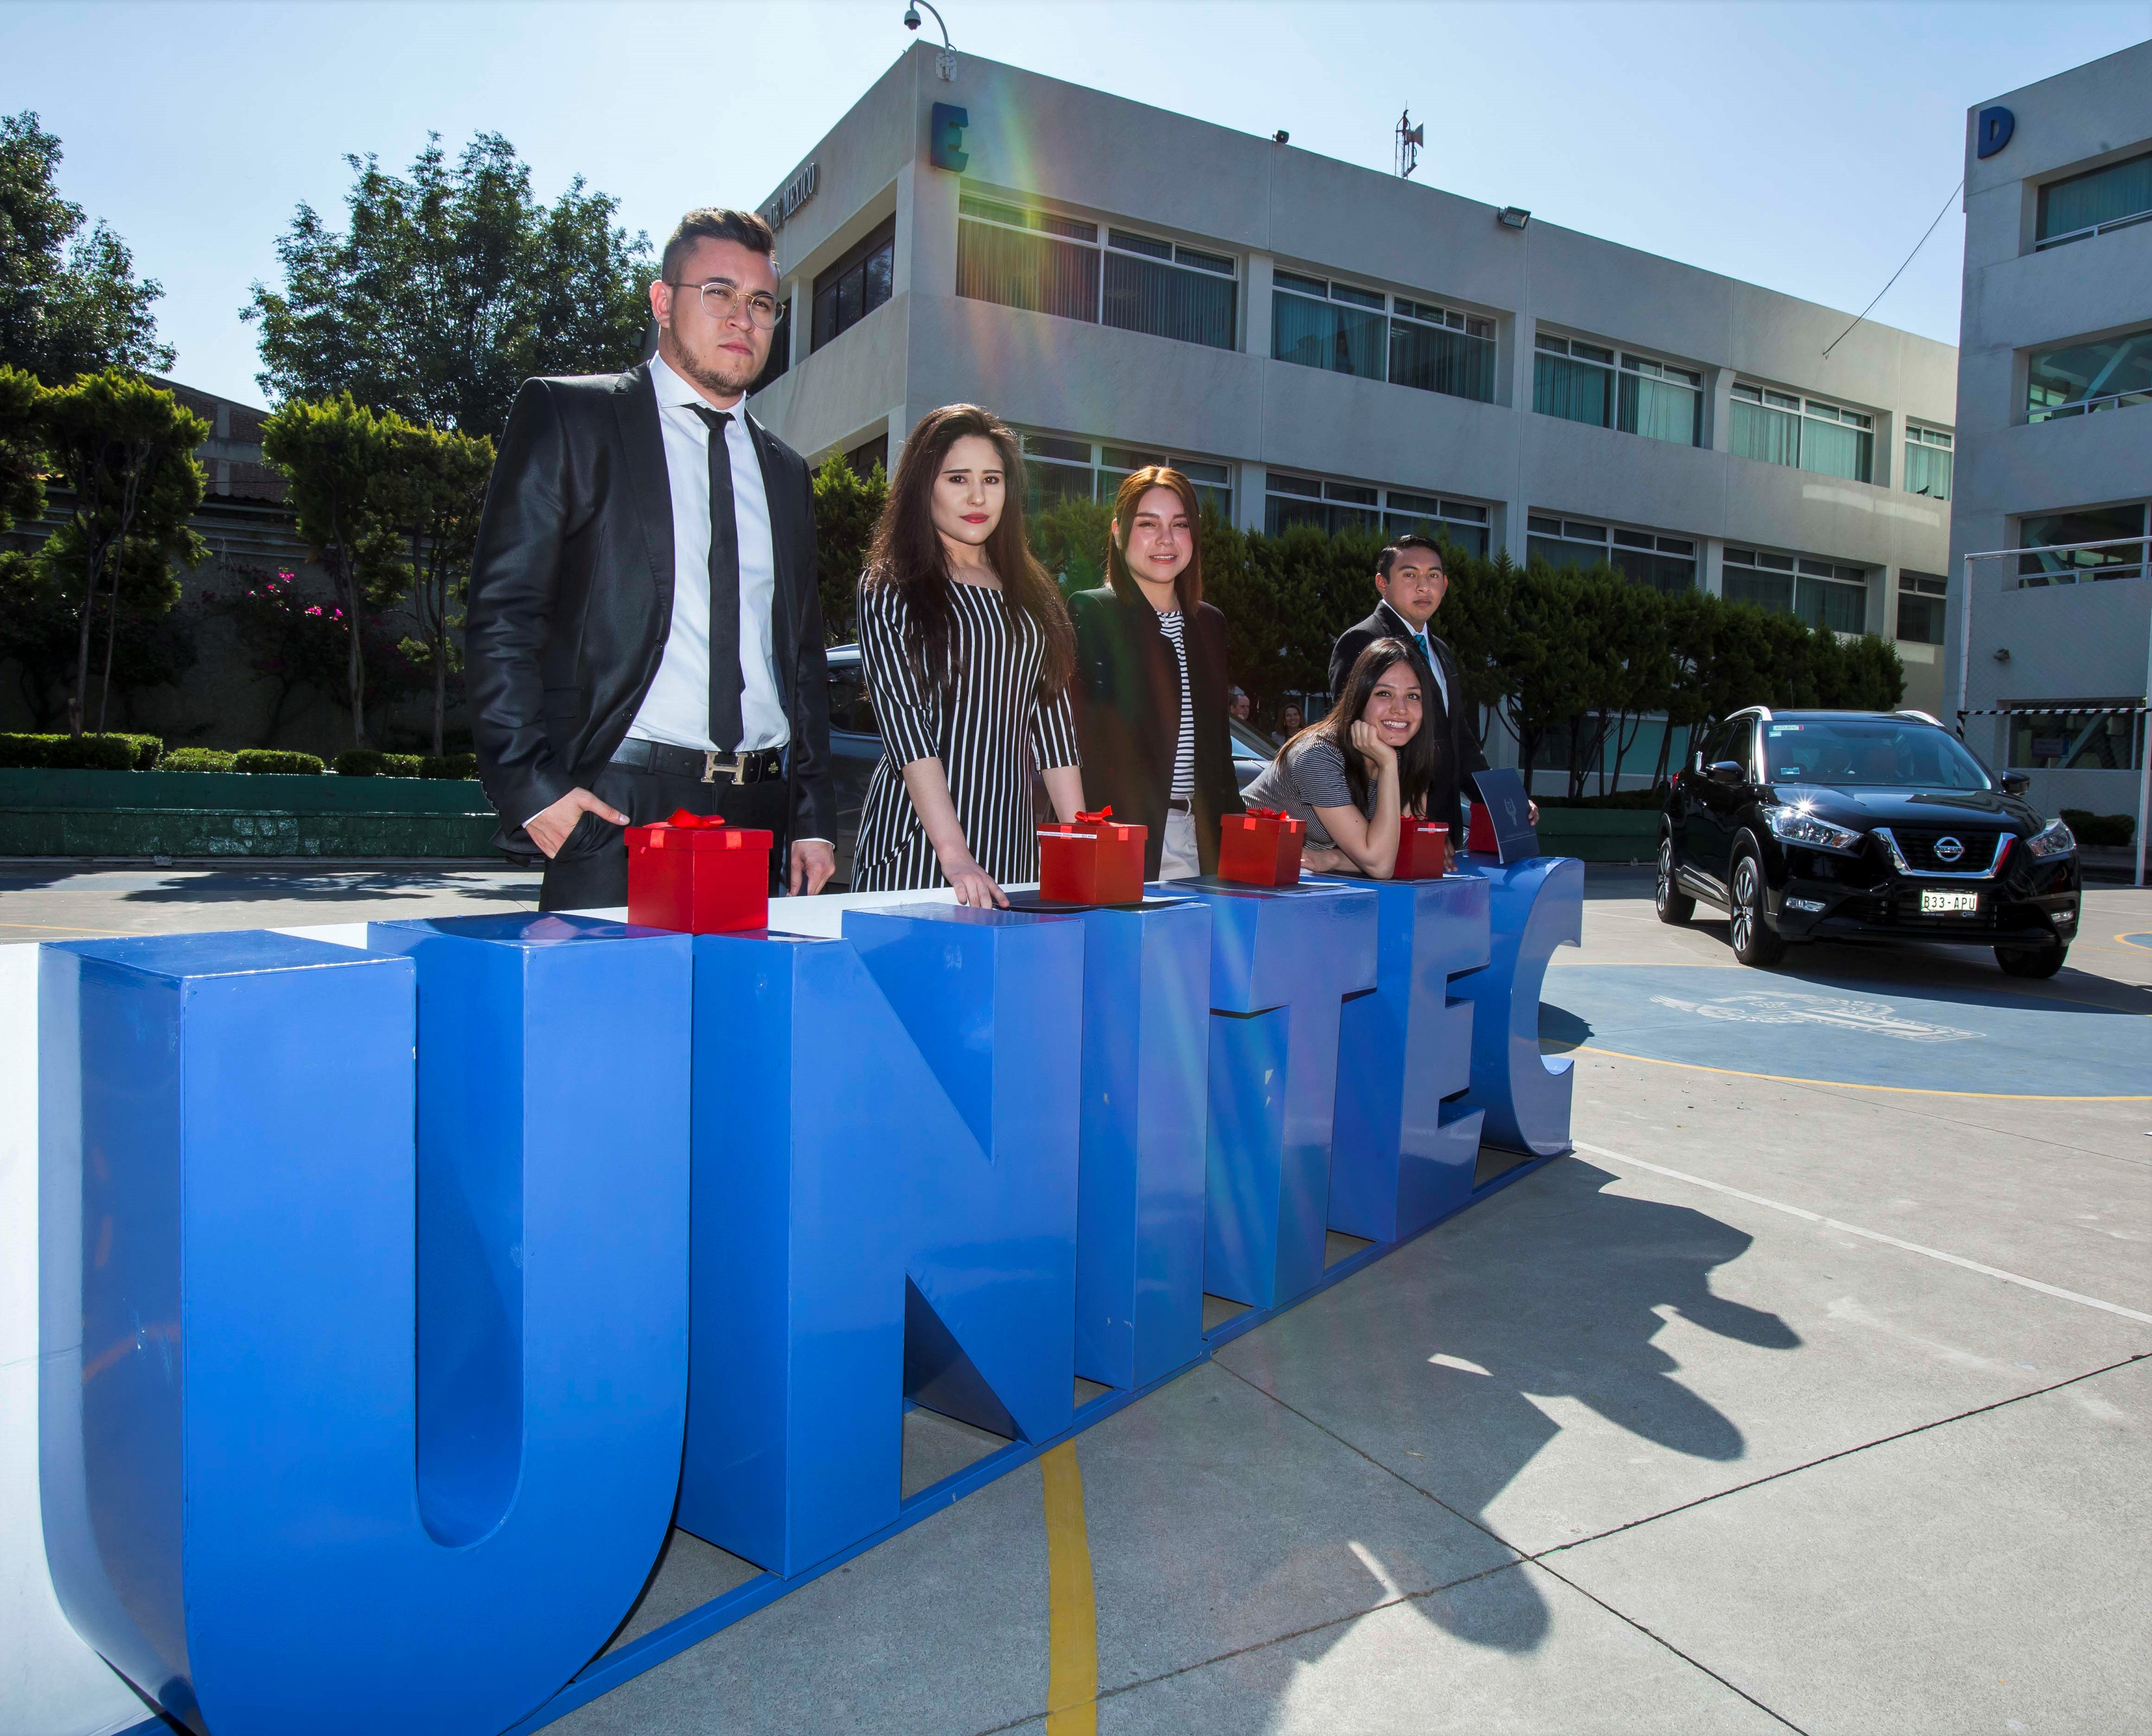 Nissan y UNITEC reconocen el talento universitario de 10 estudiantes - Featured Image